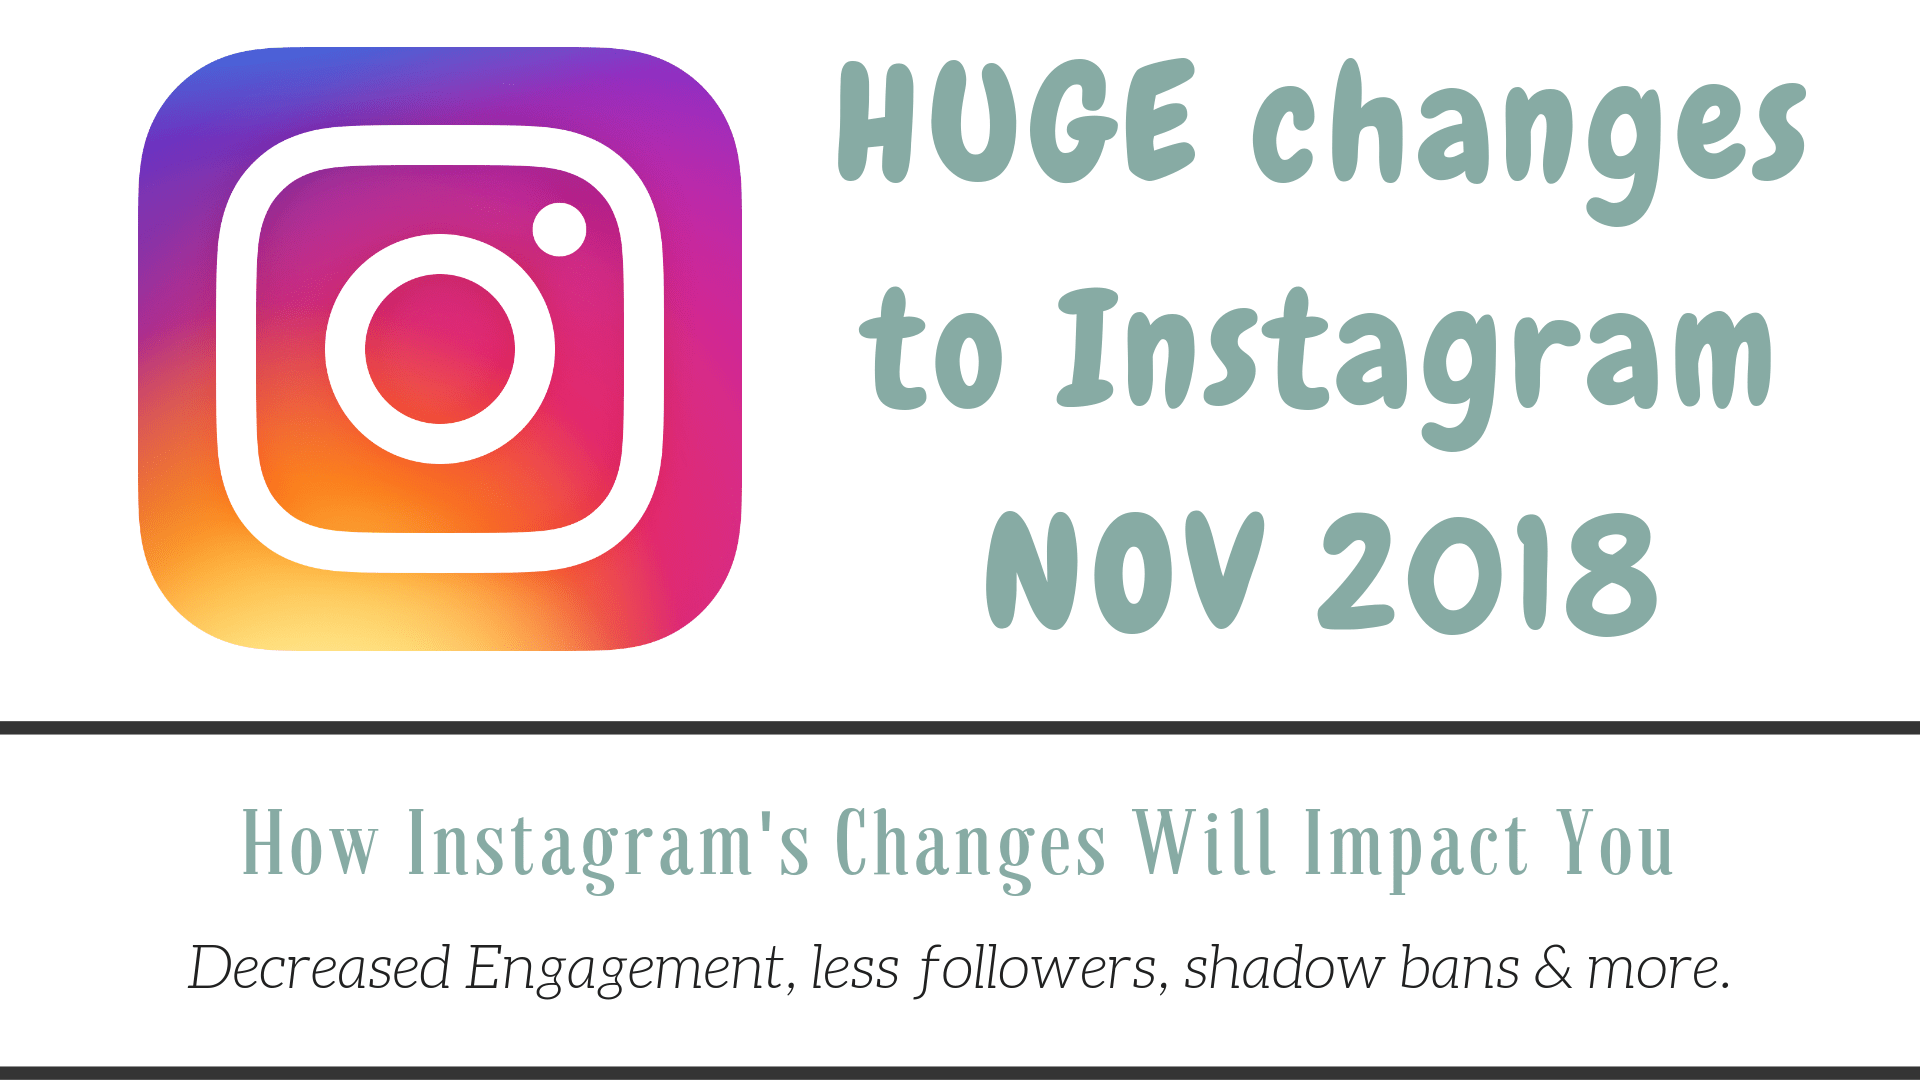 Instagram Changes November 2018 How they will impact